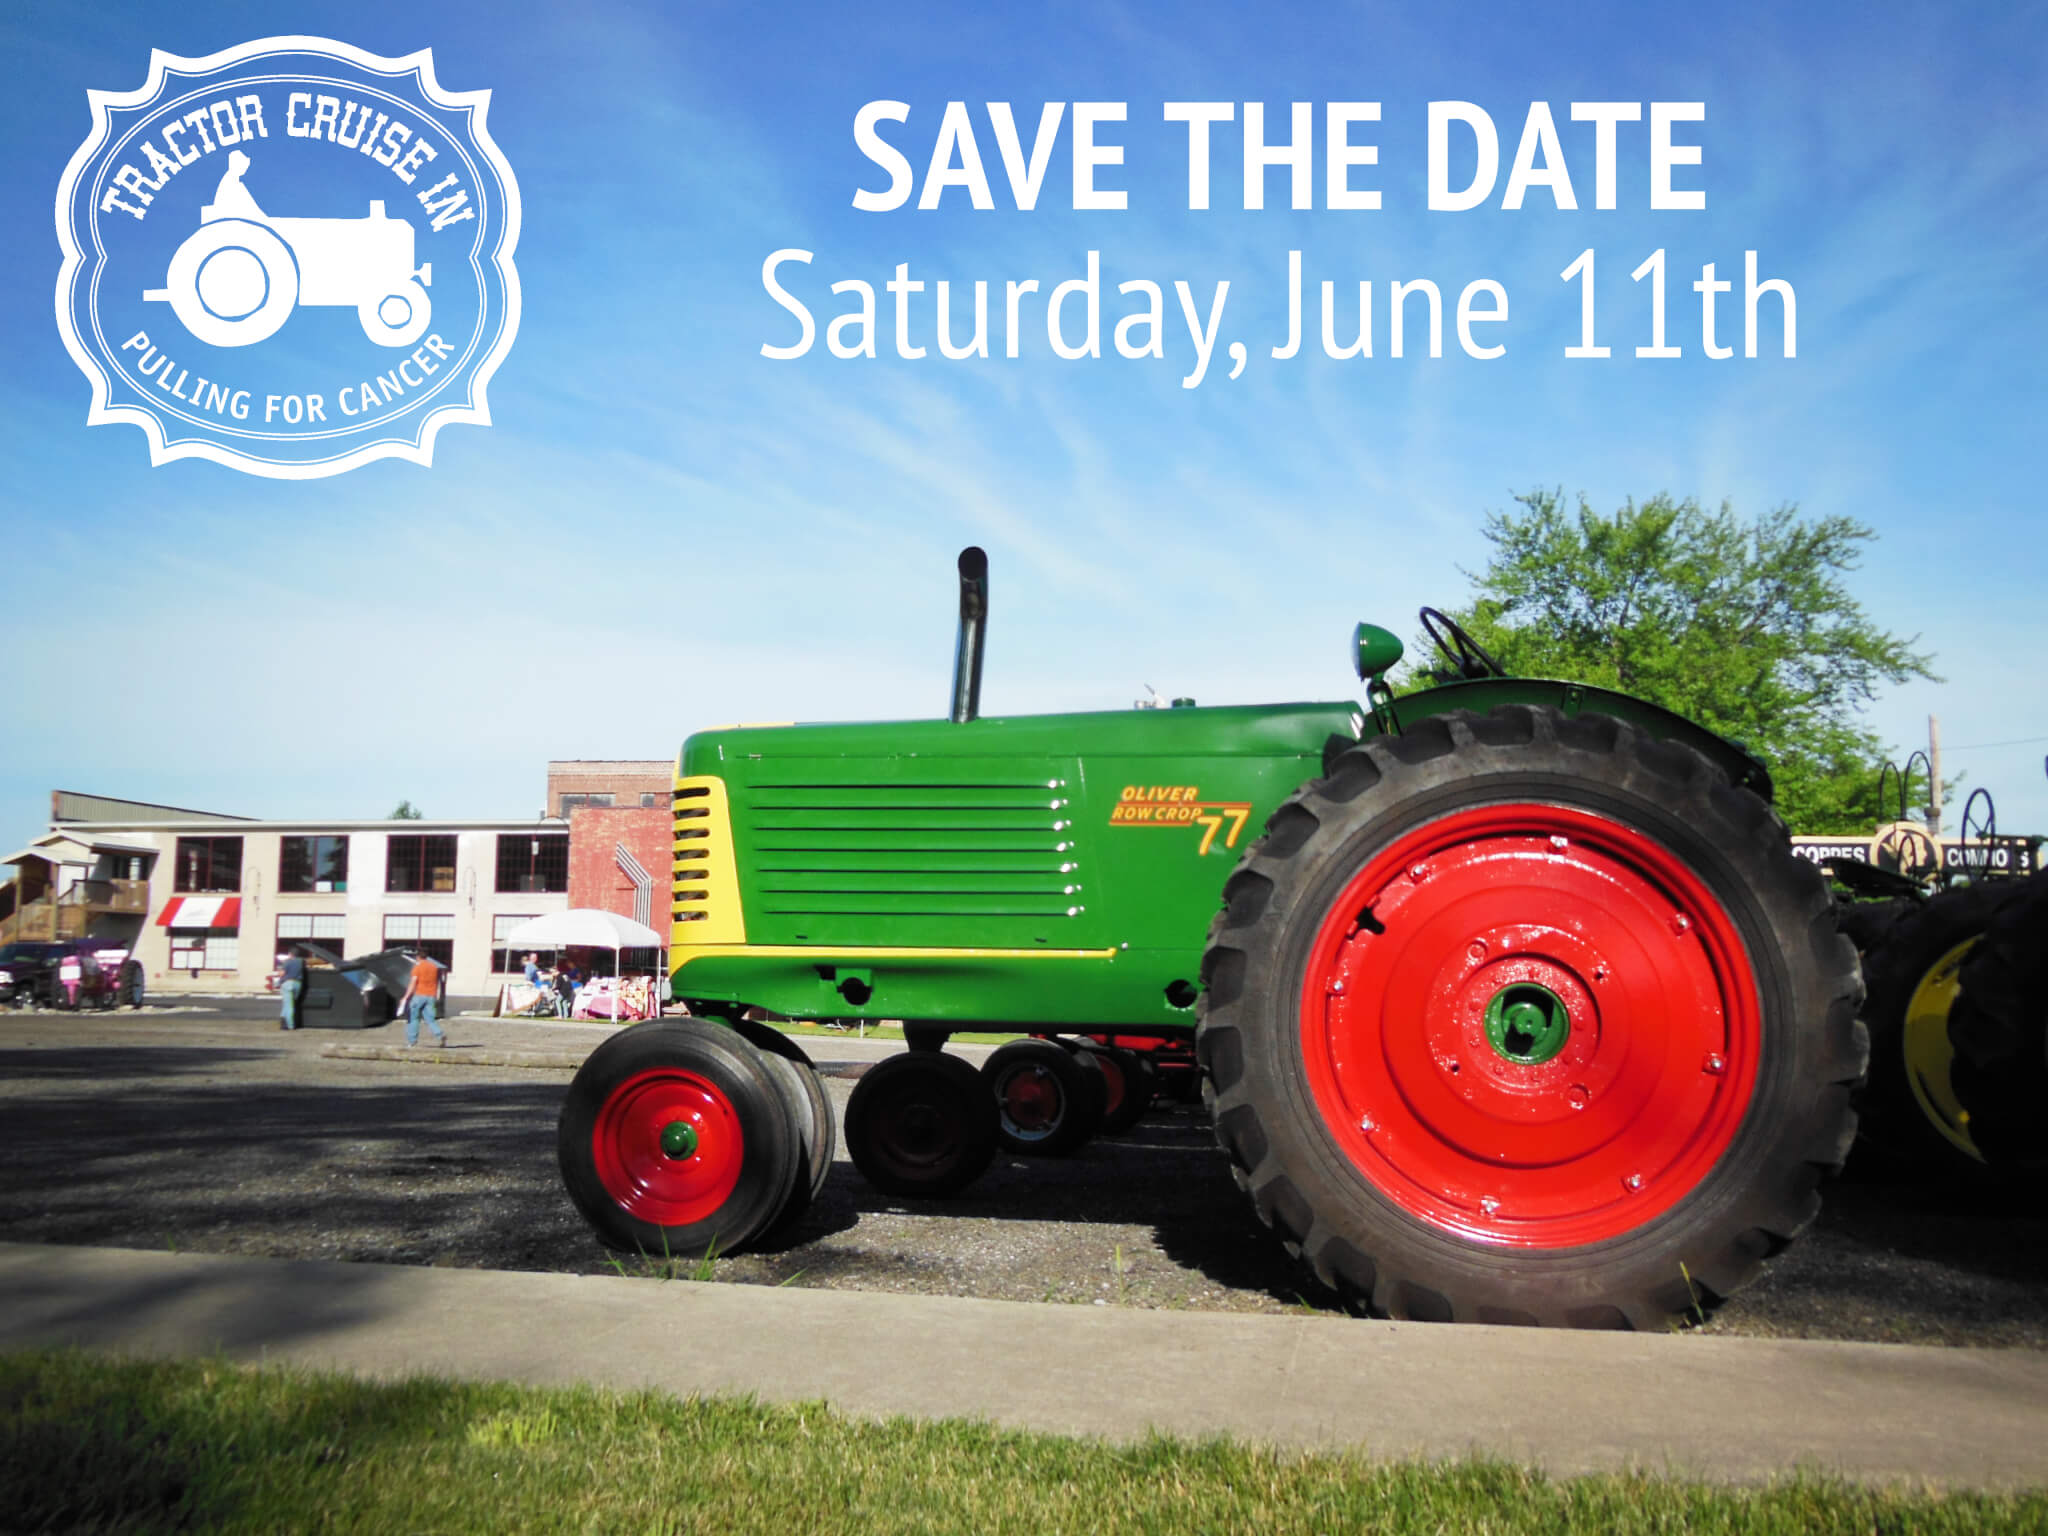 Tractor Cruise In Save the Date